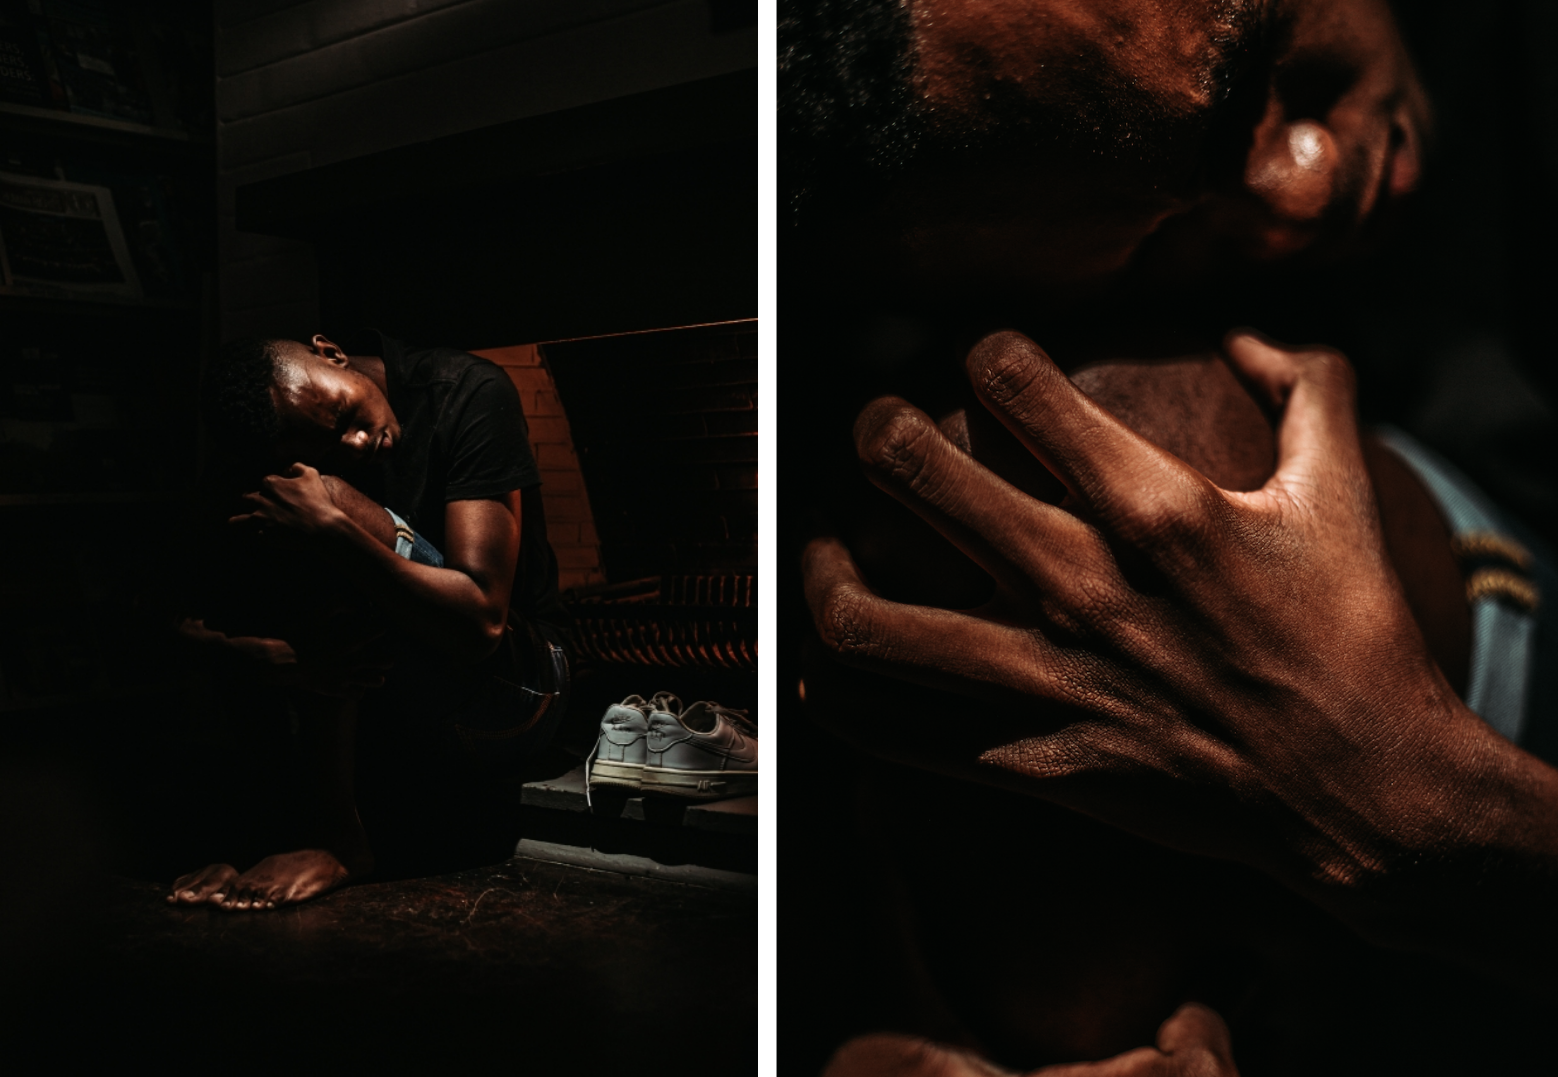 Young man crouches in a dark corner of a room hugging his knees, eyes closed